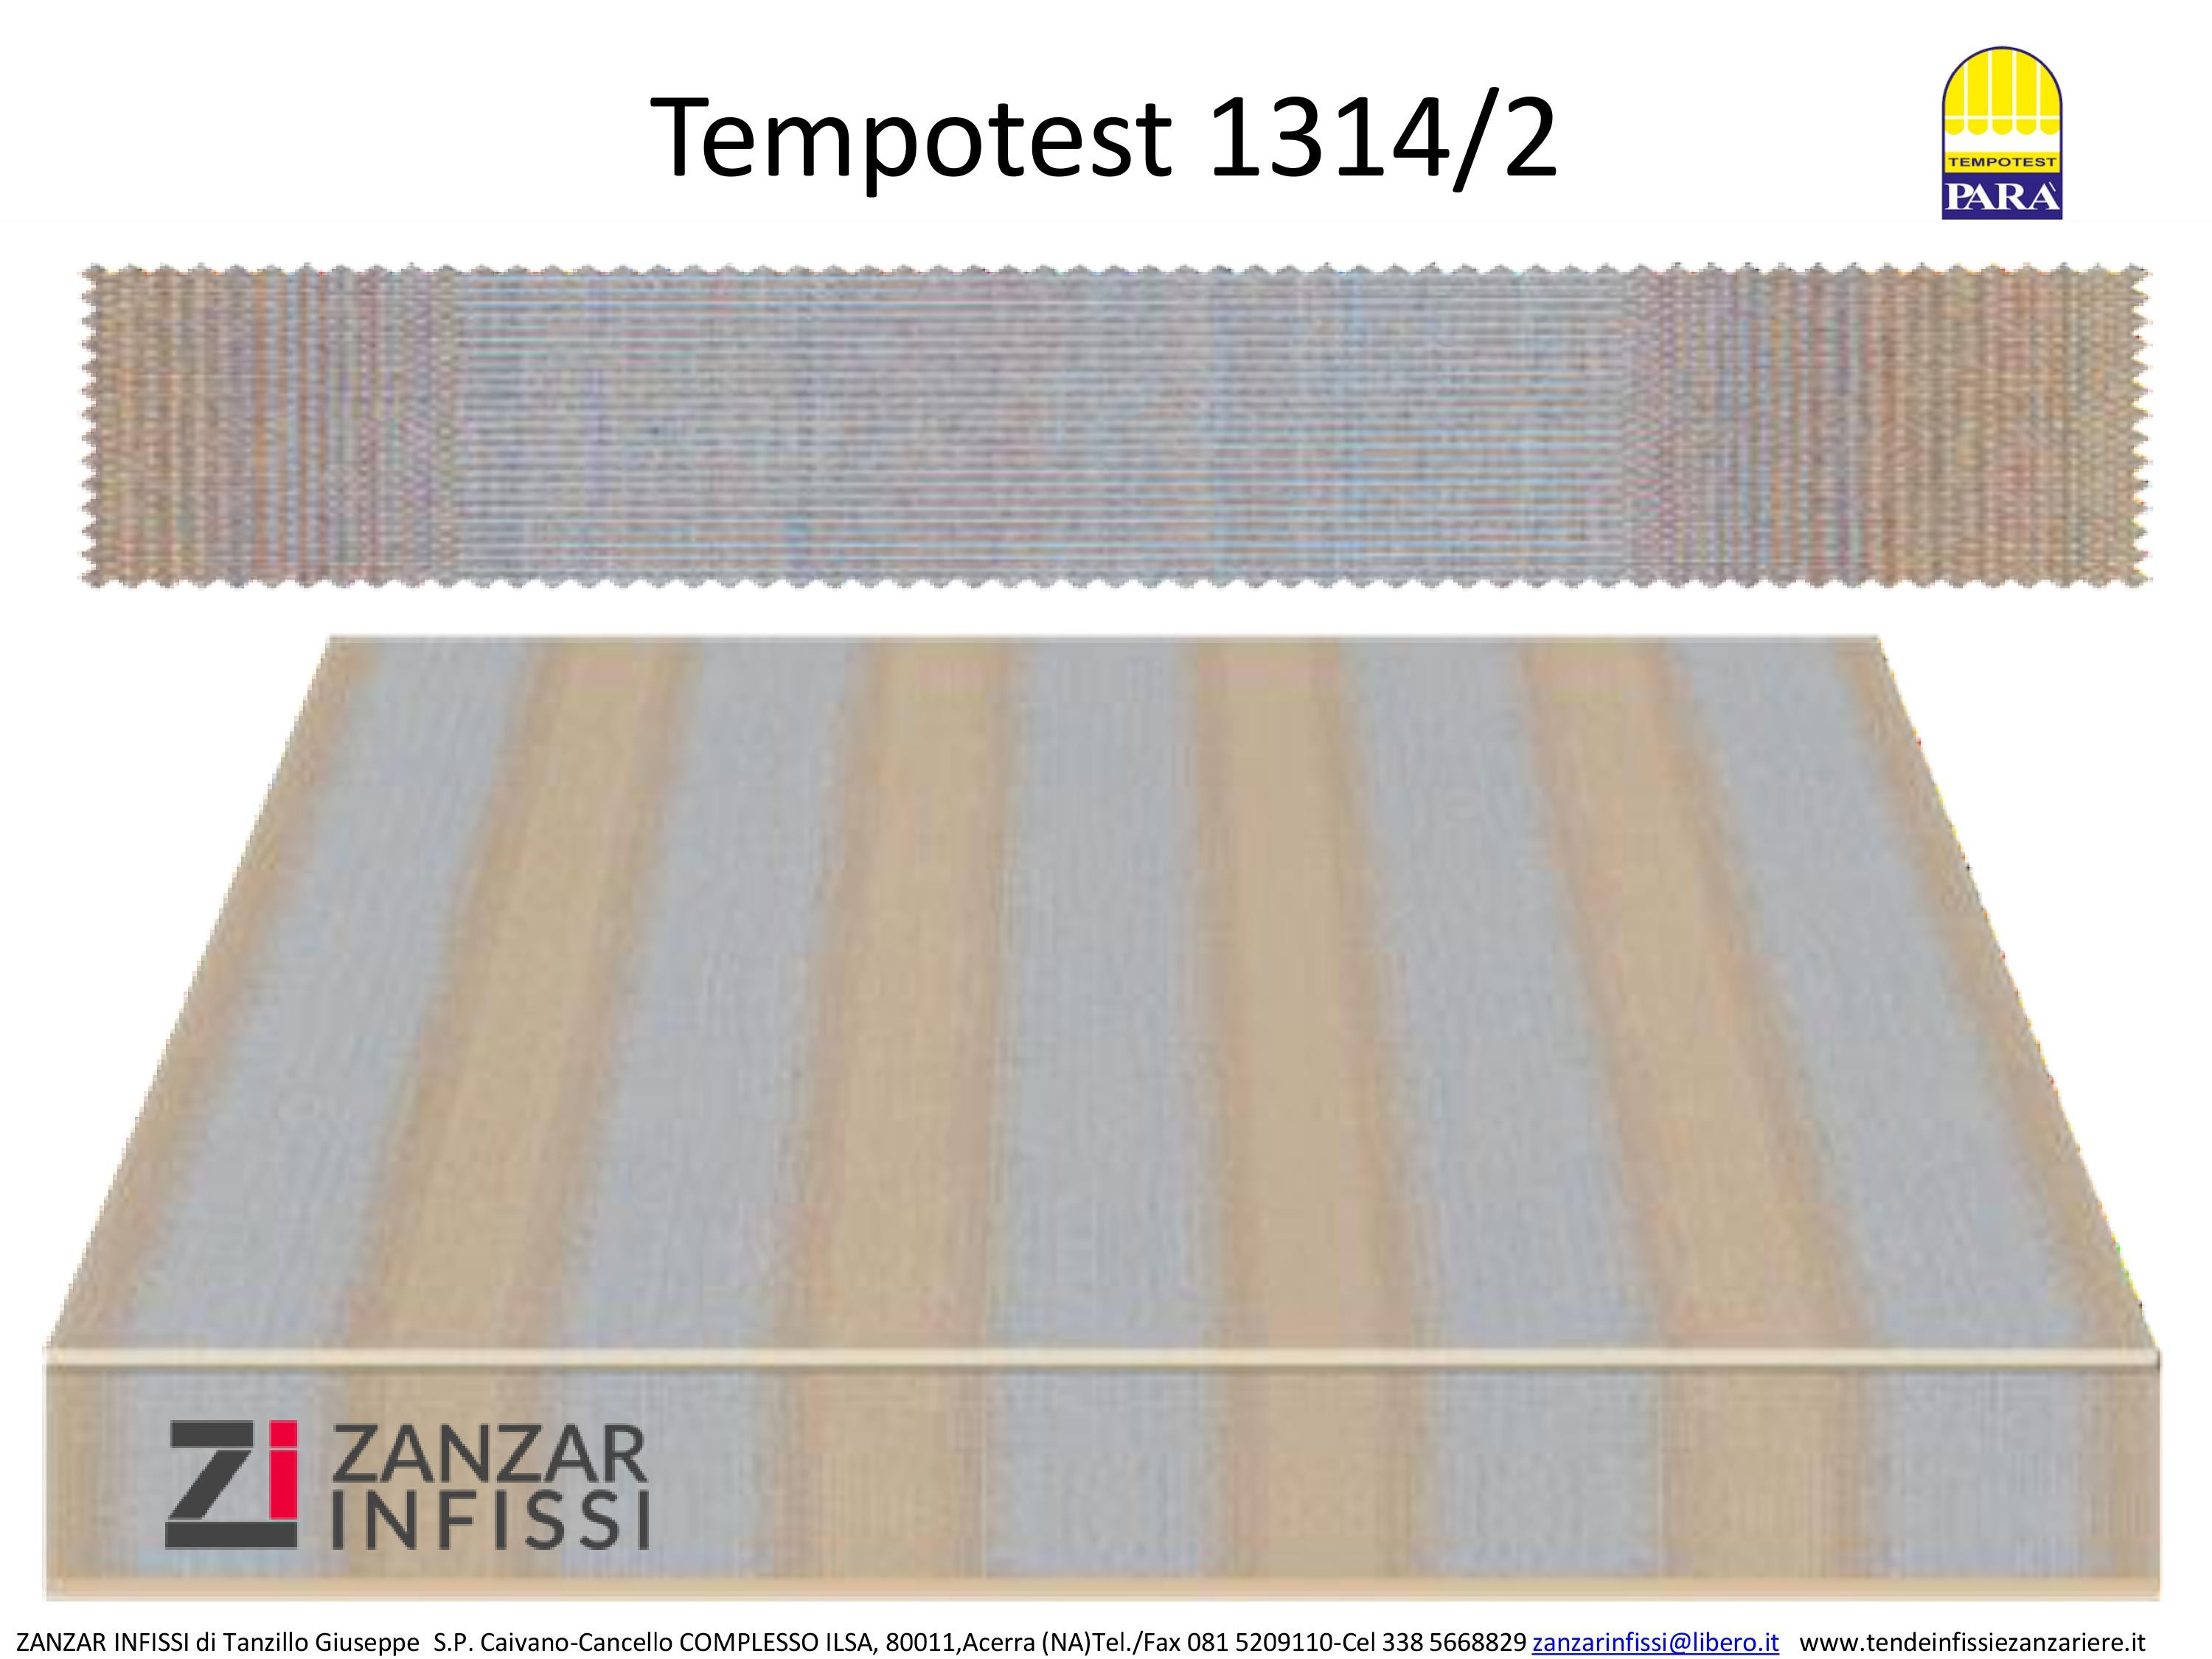 Tempotest 1314/2